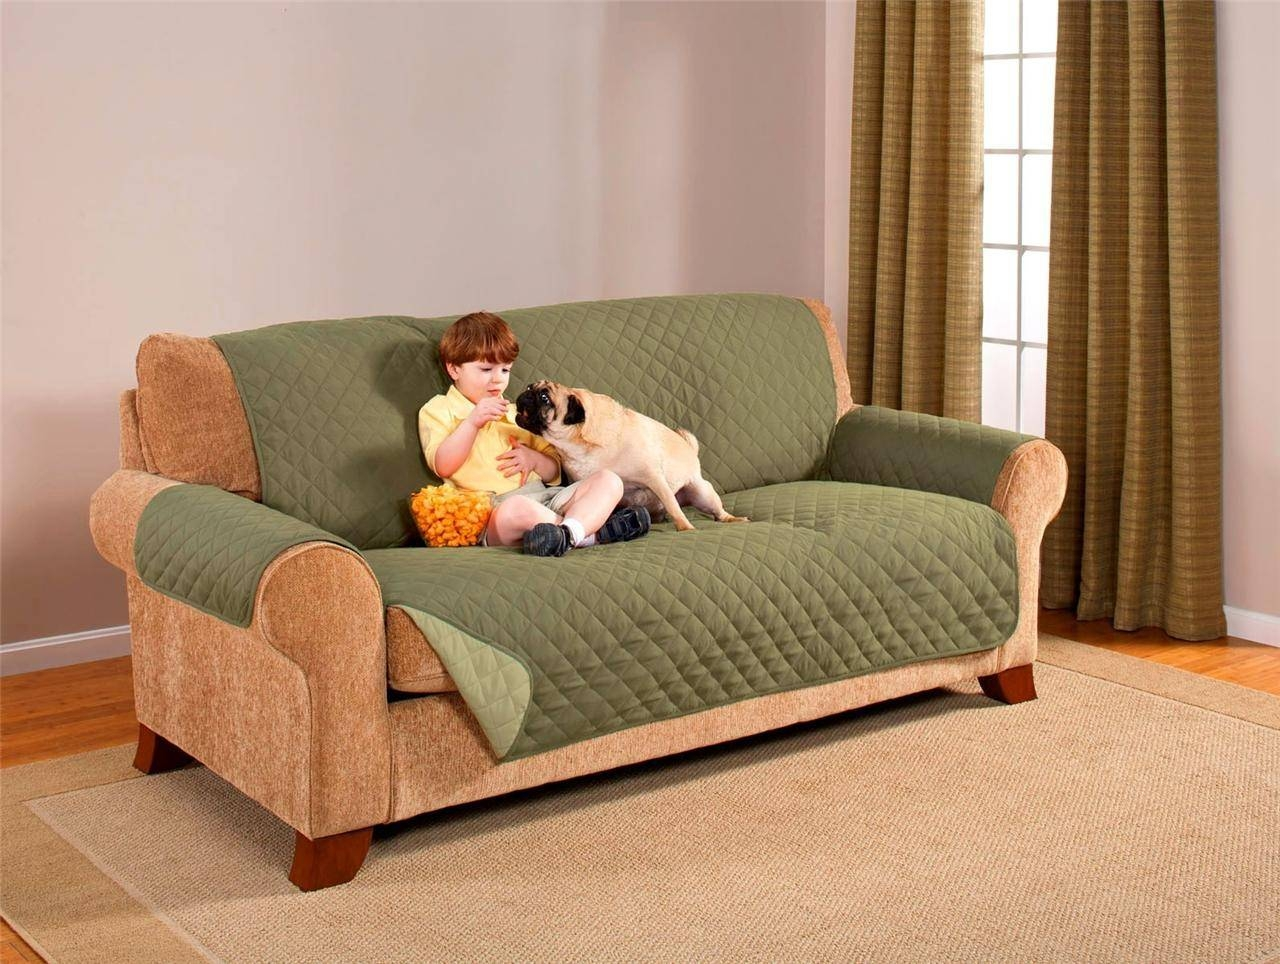 Sofa Set Covers 34 With Sofa Set Covers | Jinanhongyu inside Covers For Sofas And Chairs (Image 10 of 15)